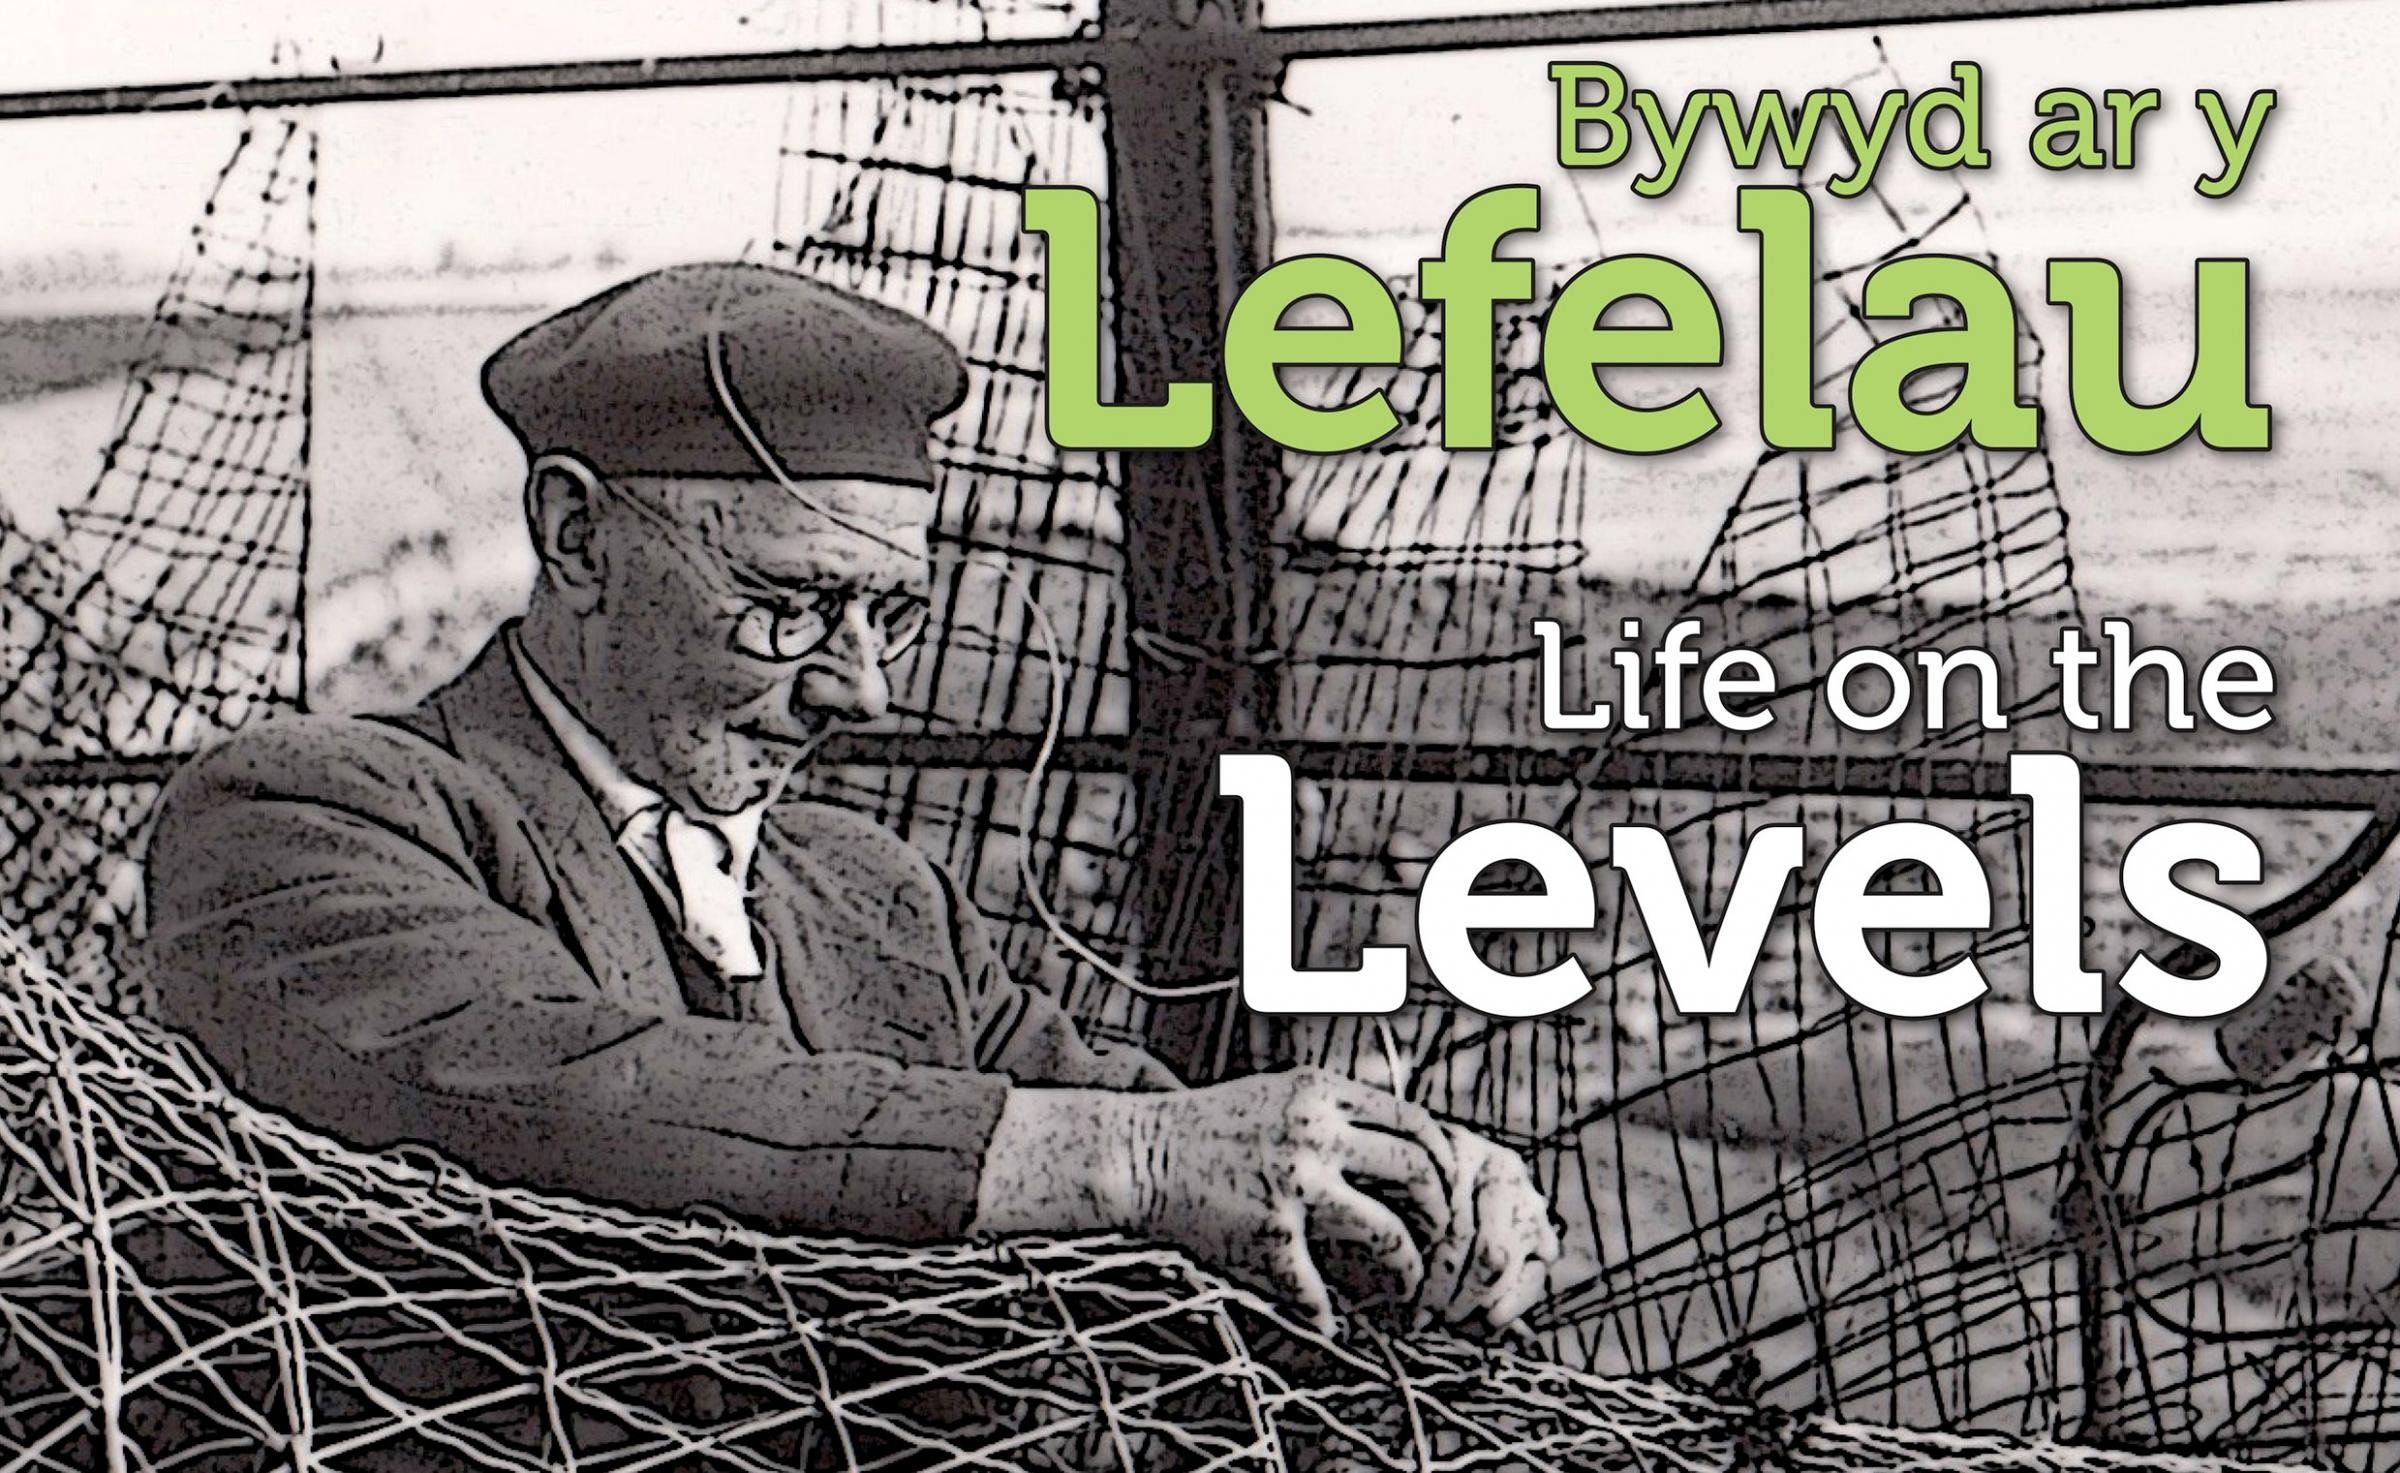 'Life on the Levels' at Rumney